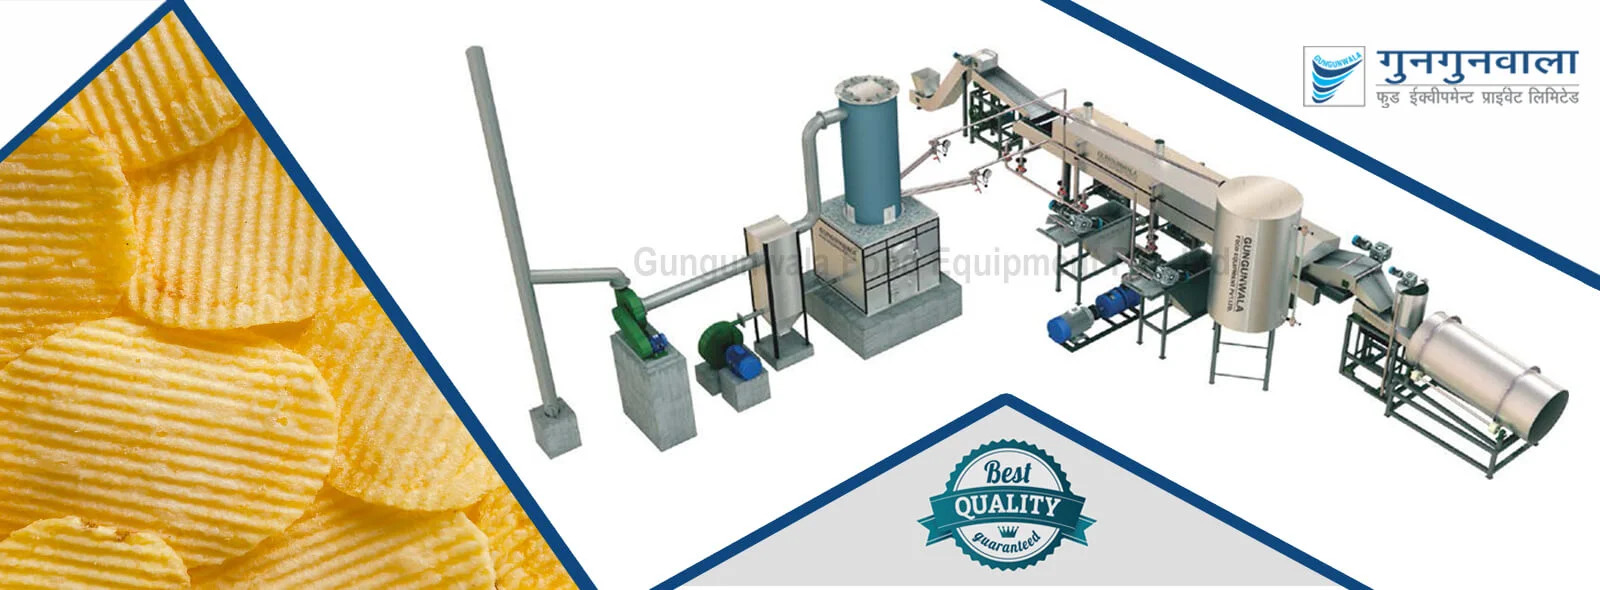 Fully Automatic Potato Chips Production Line Manufacturer India